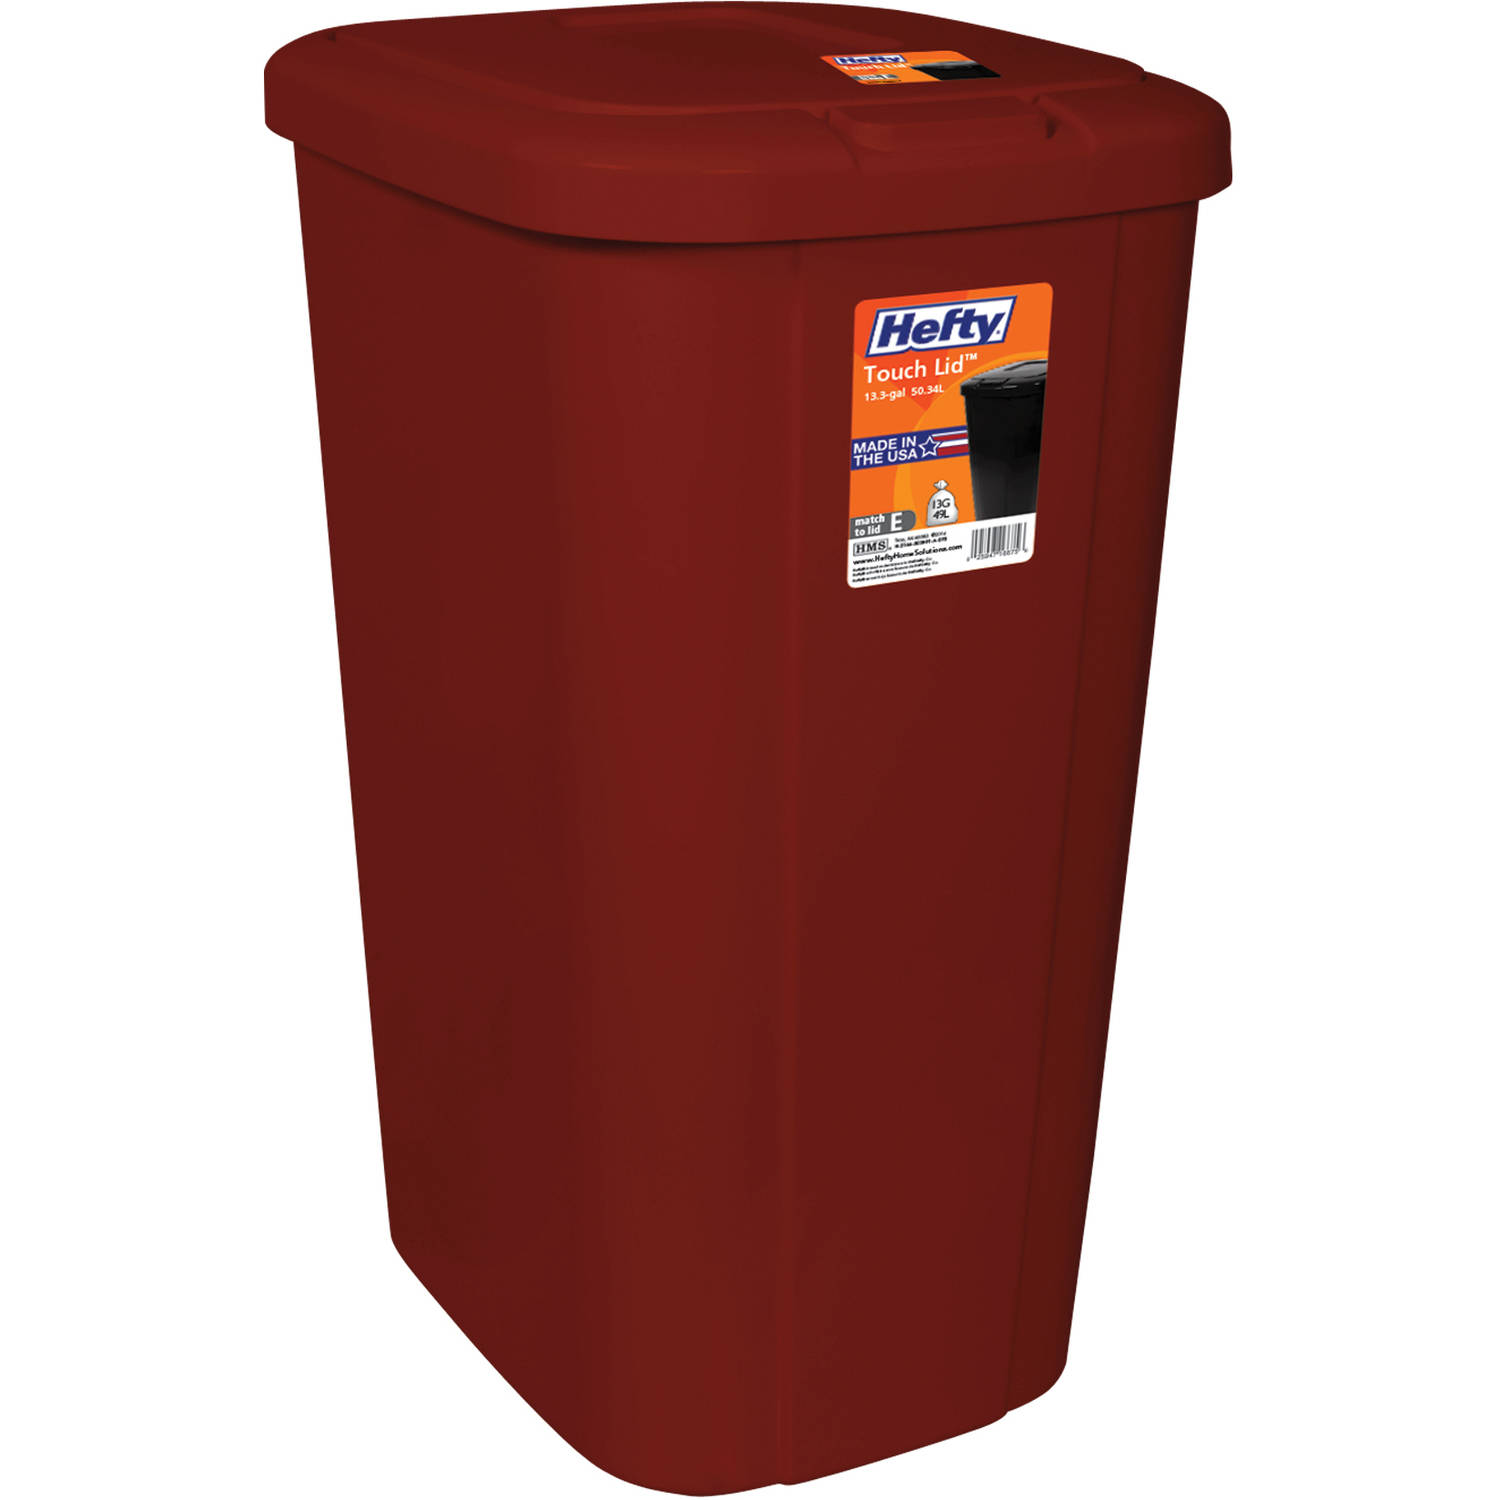 hefty tall kitchen bags cabinet door styles touch-lid 13.3-gallon trash can, multiple colors ...